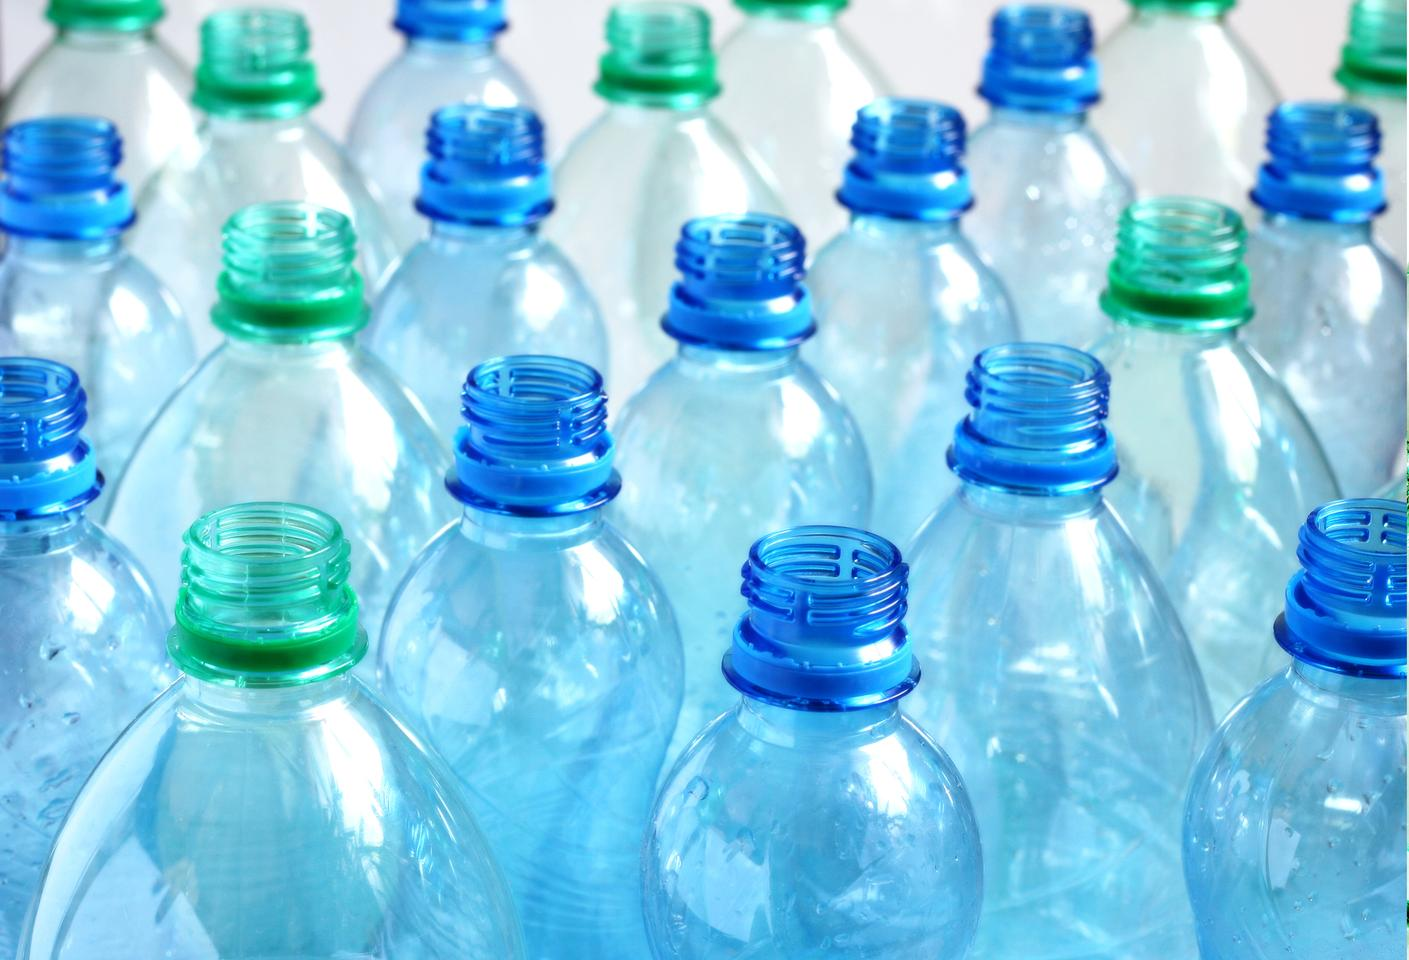 A new study has found the bioplastics contain just as many toxic chemicals as conventional plastics